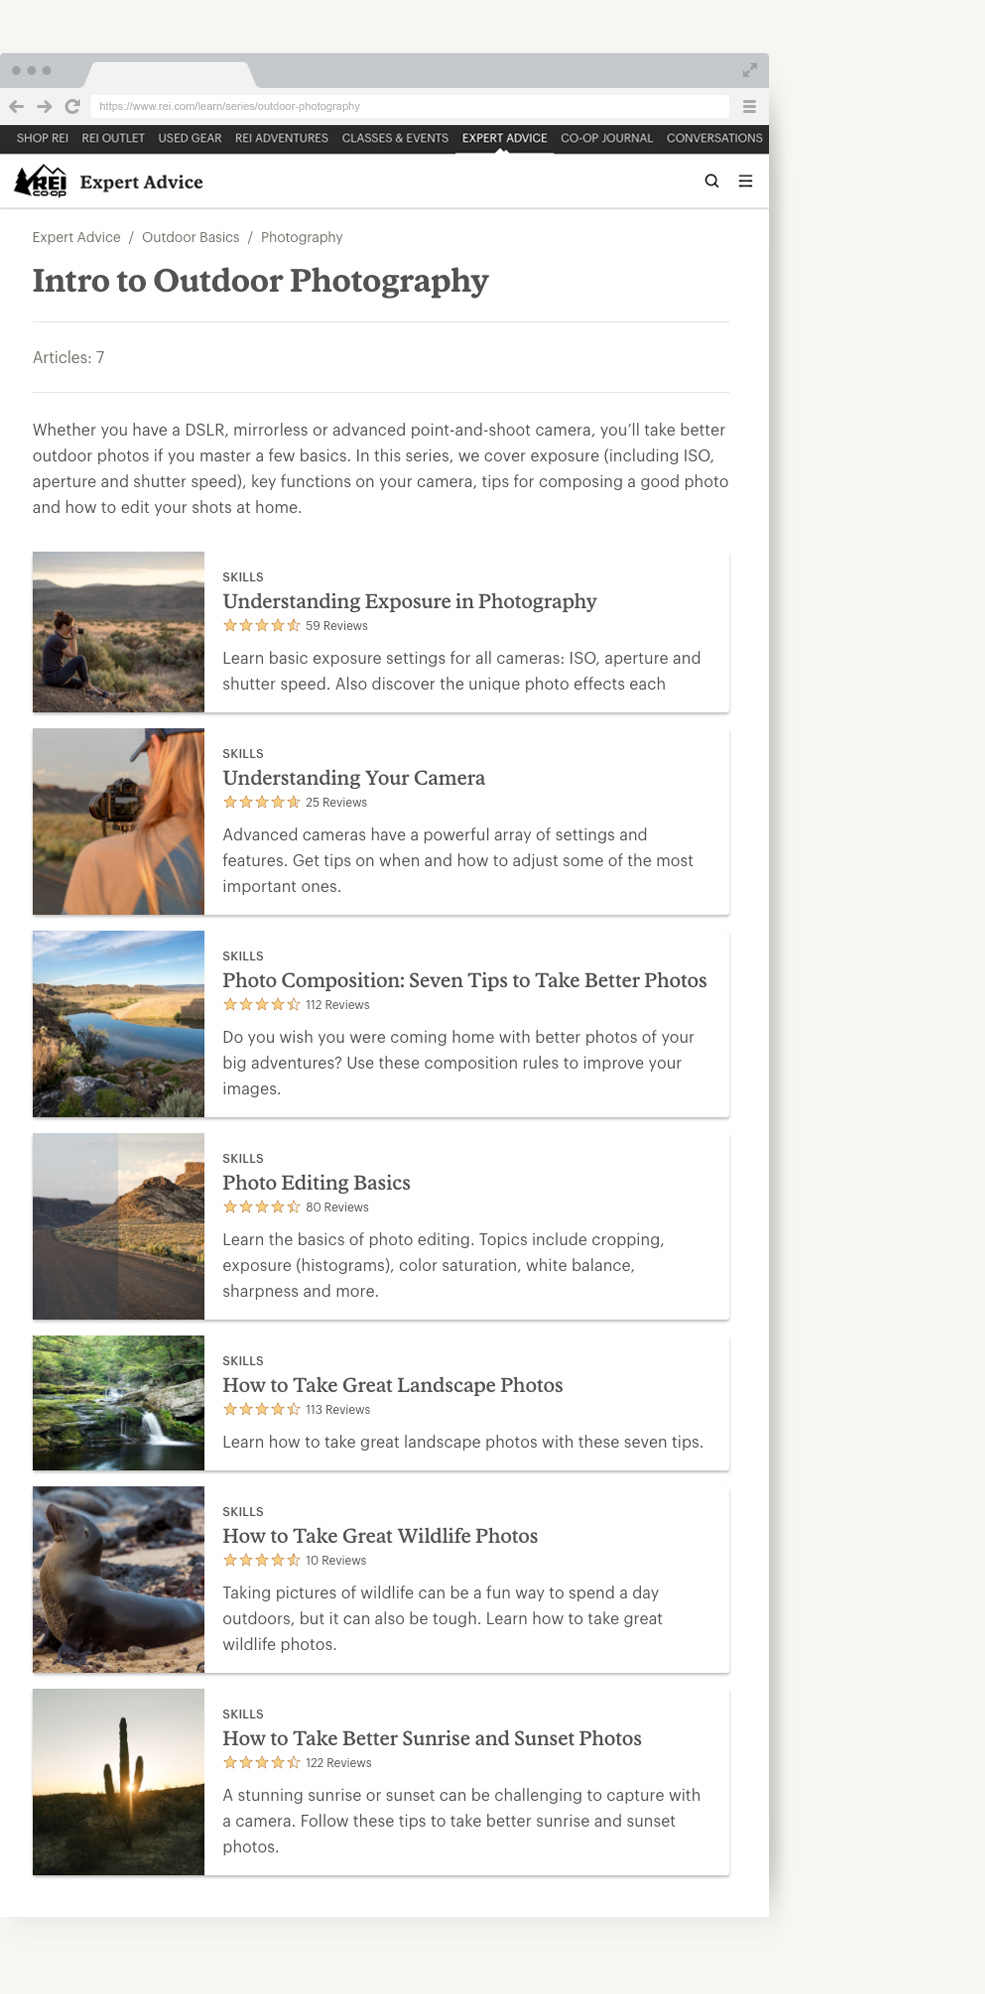 REI Expert Advice outdoor photography series page